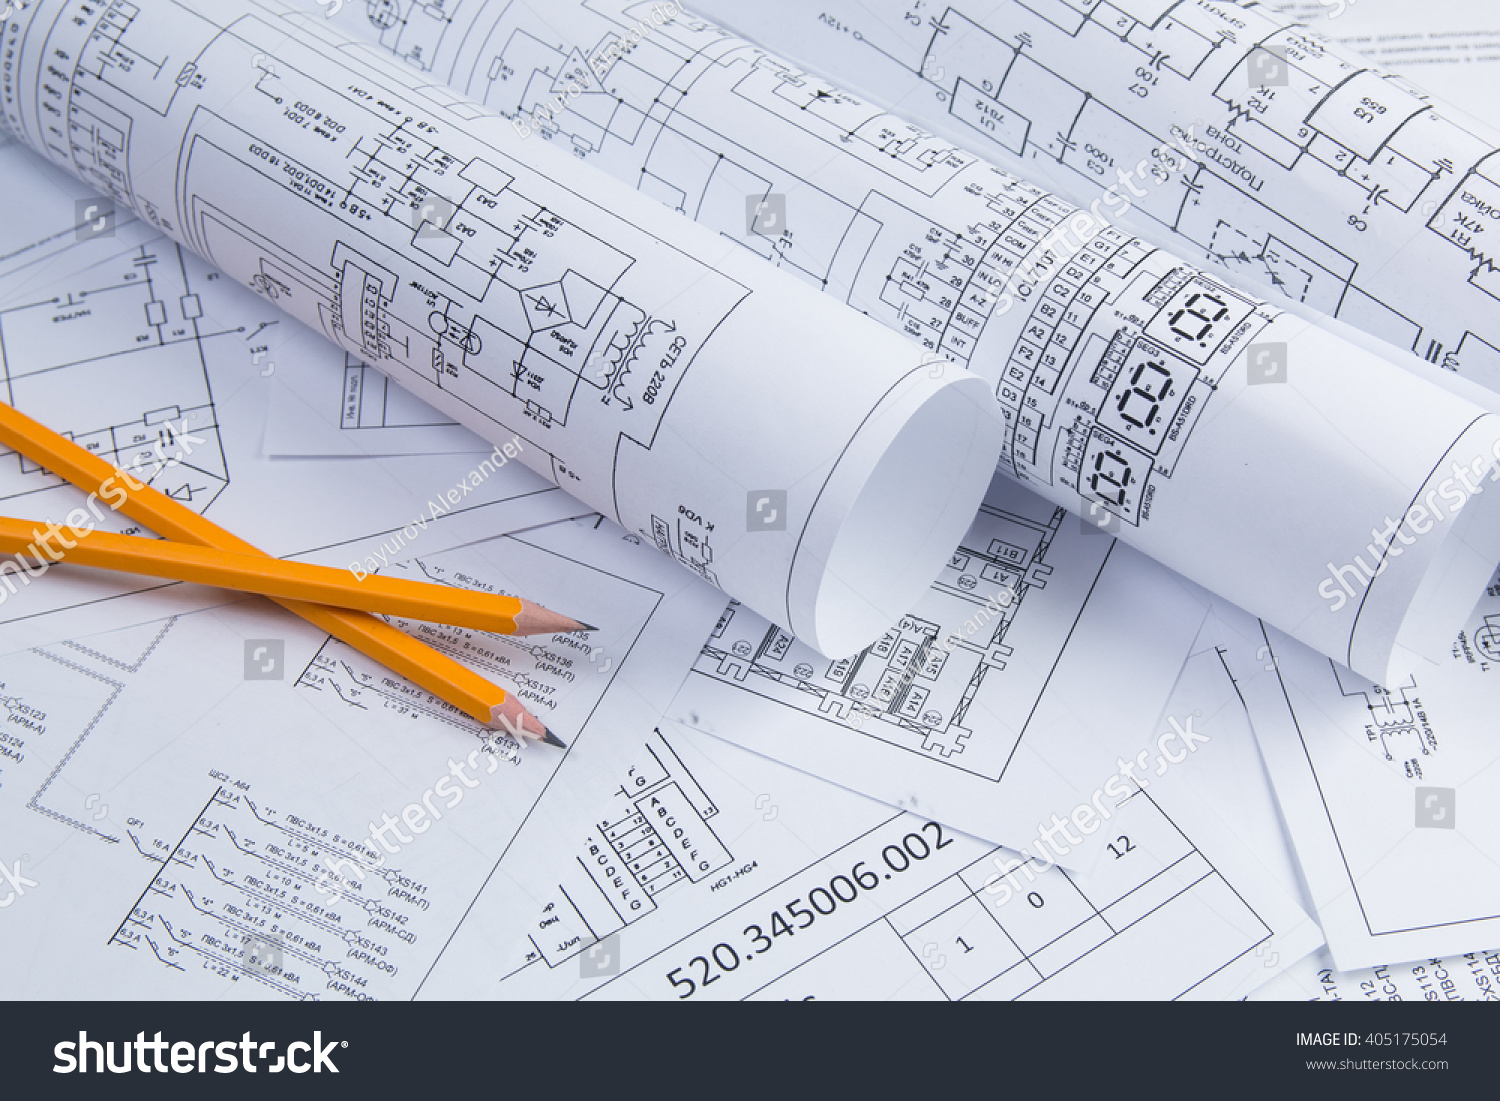 Science Technology Electronics Electrical Engineering Drawings Stock Diagram And Printing With Pencil Scientific Development